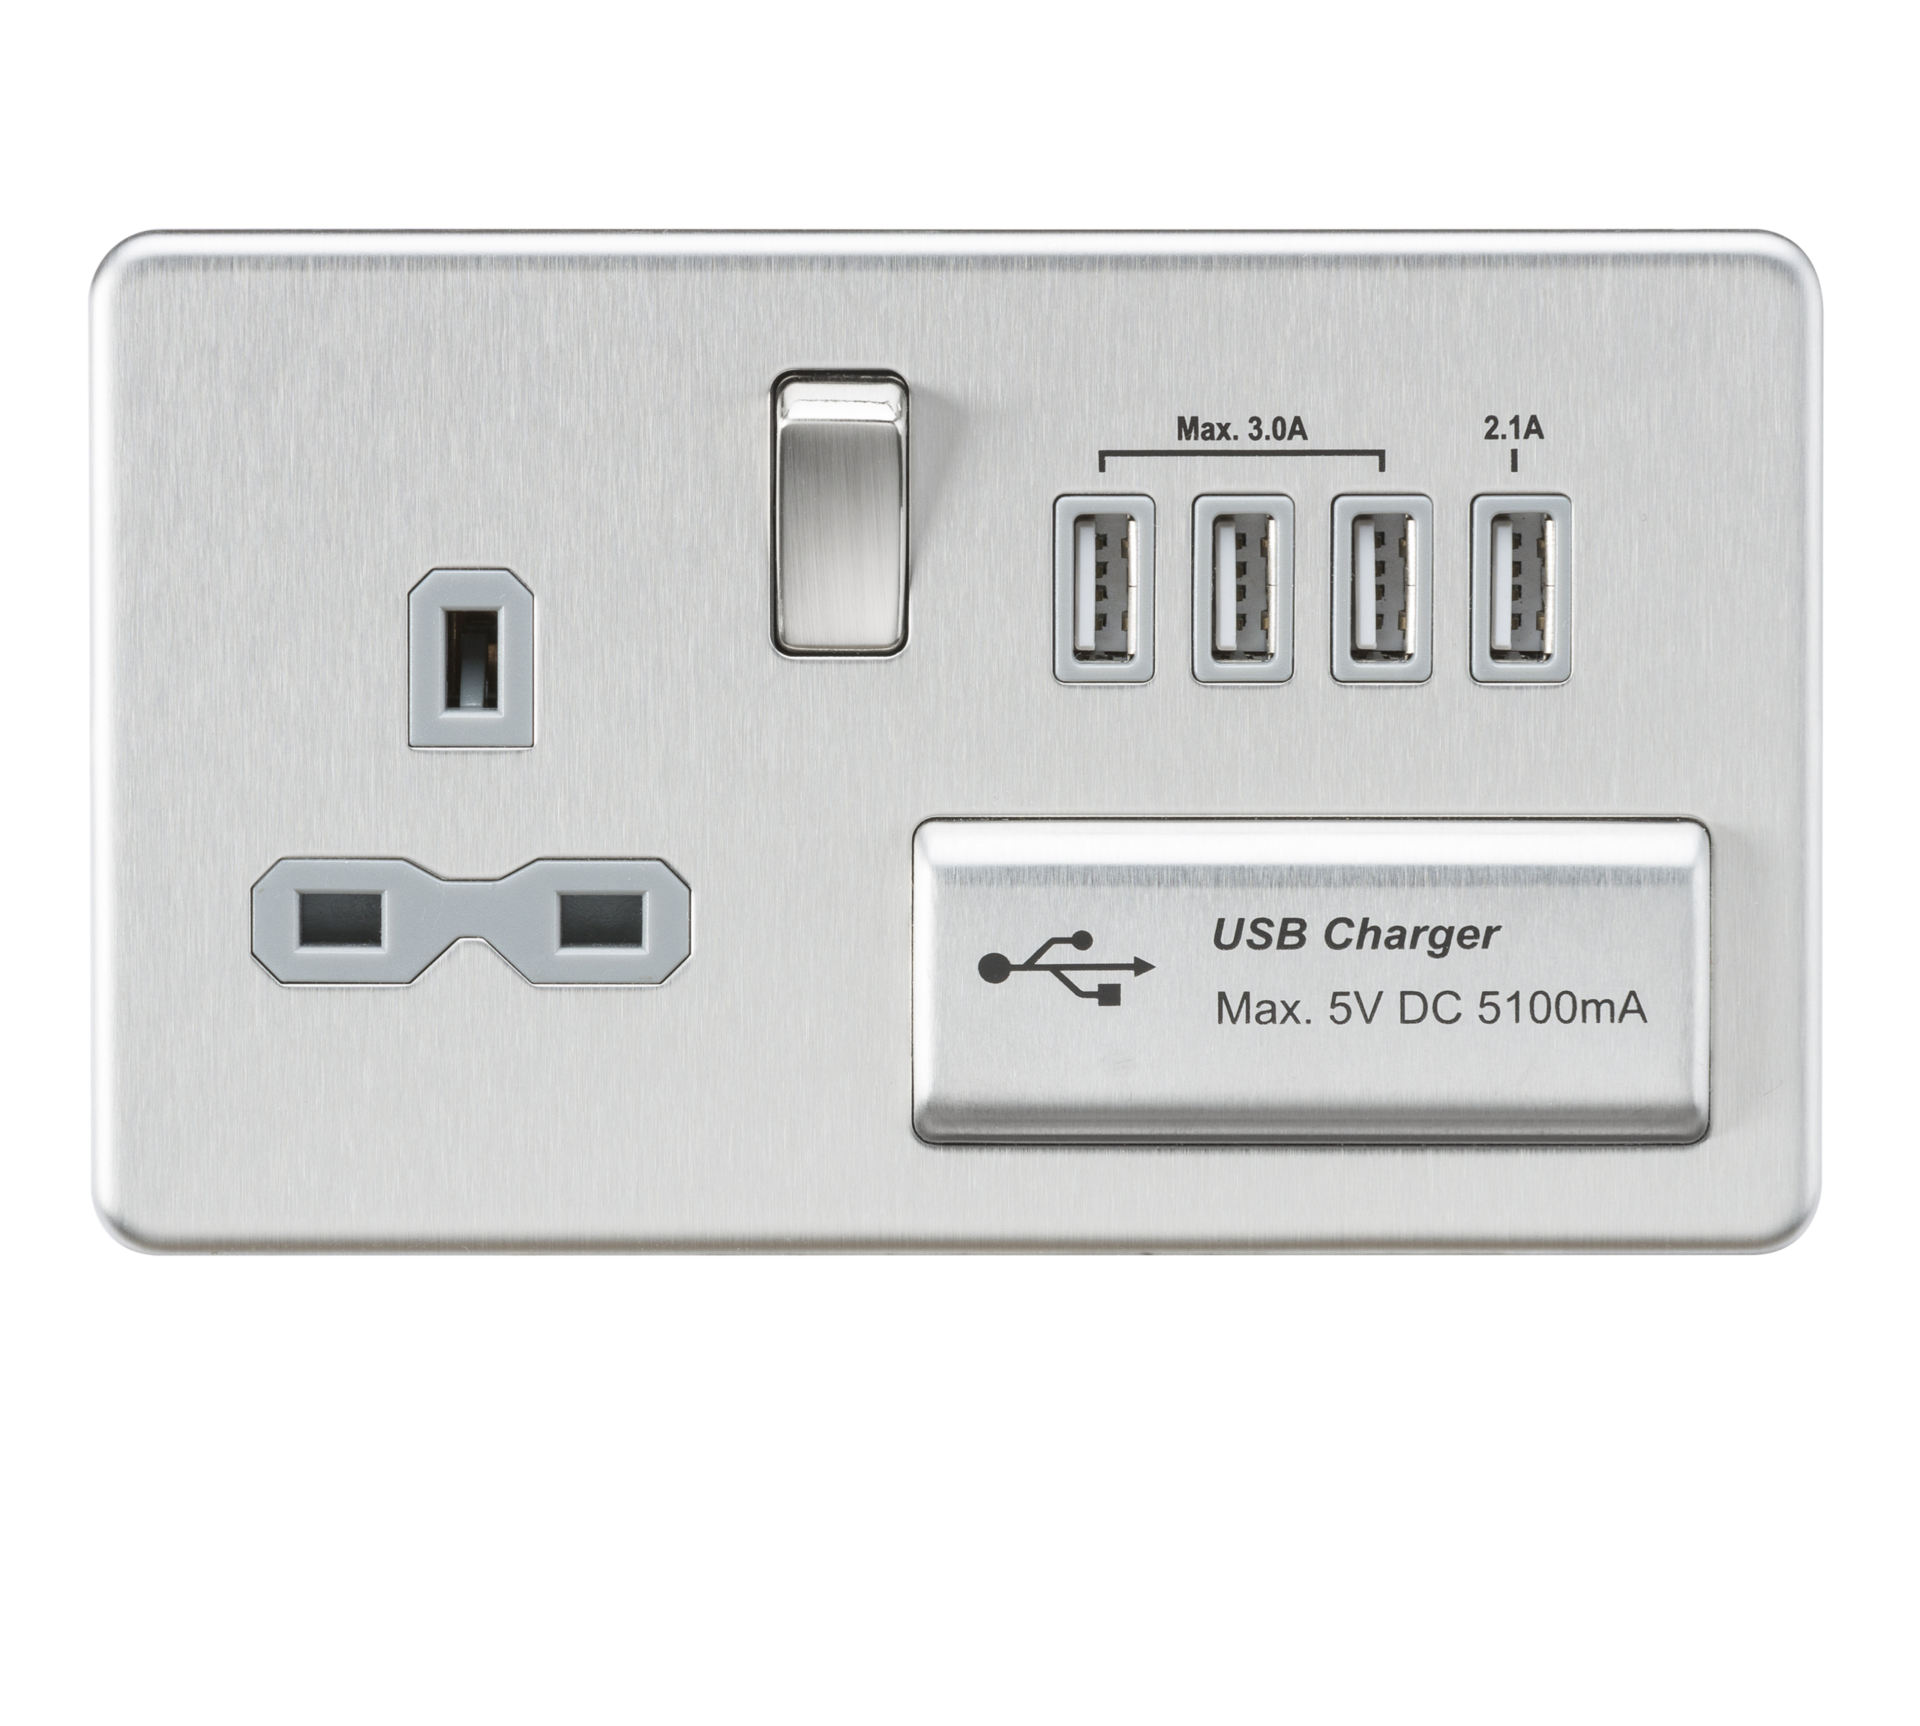 Screwless 13A switched socket with quad USB charger - Brushed chrome with grey insert